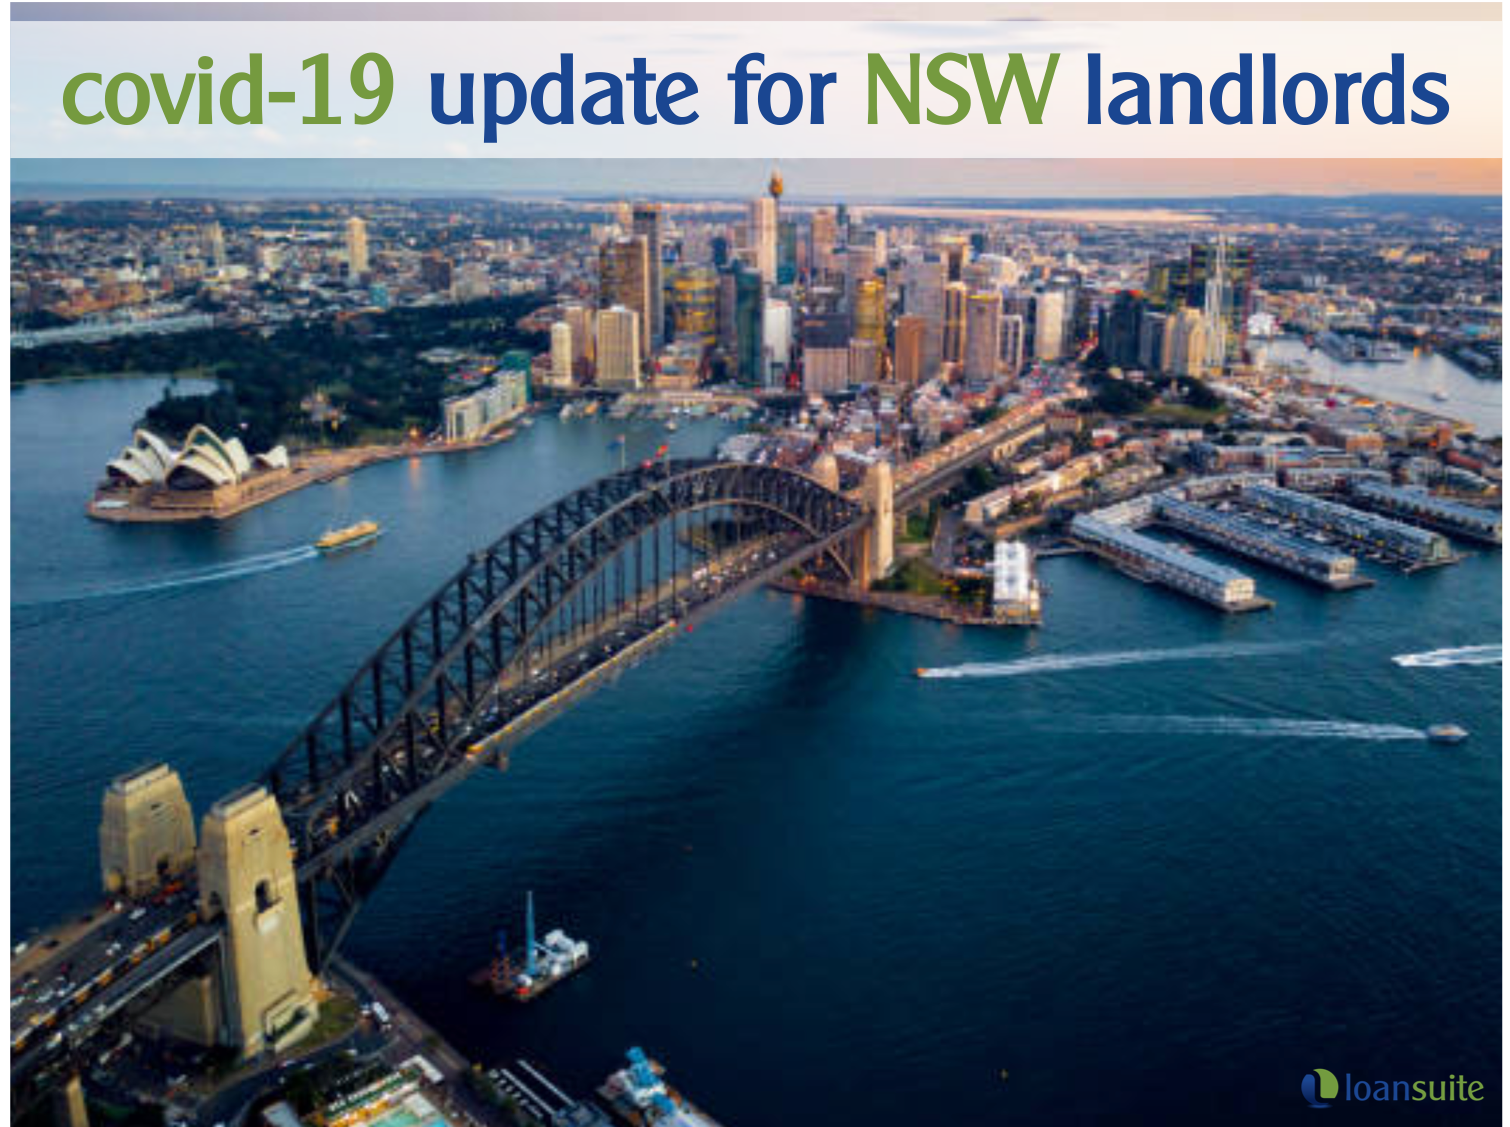 COVID-19 Update for NSW Landlords - Loansuite